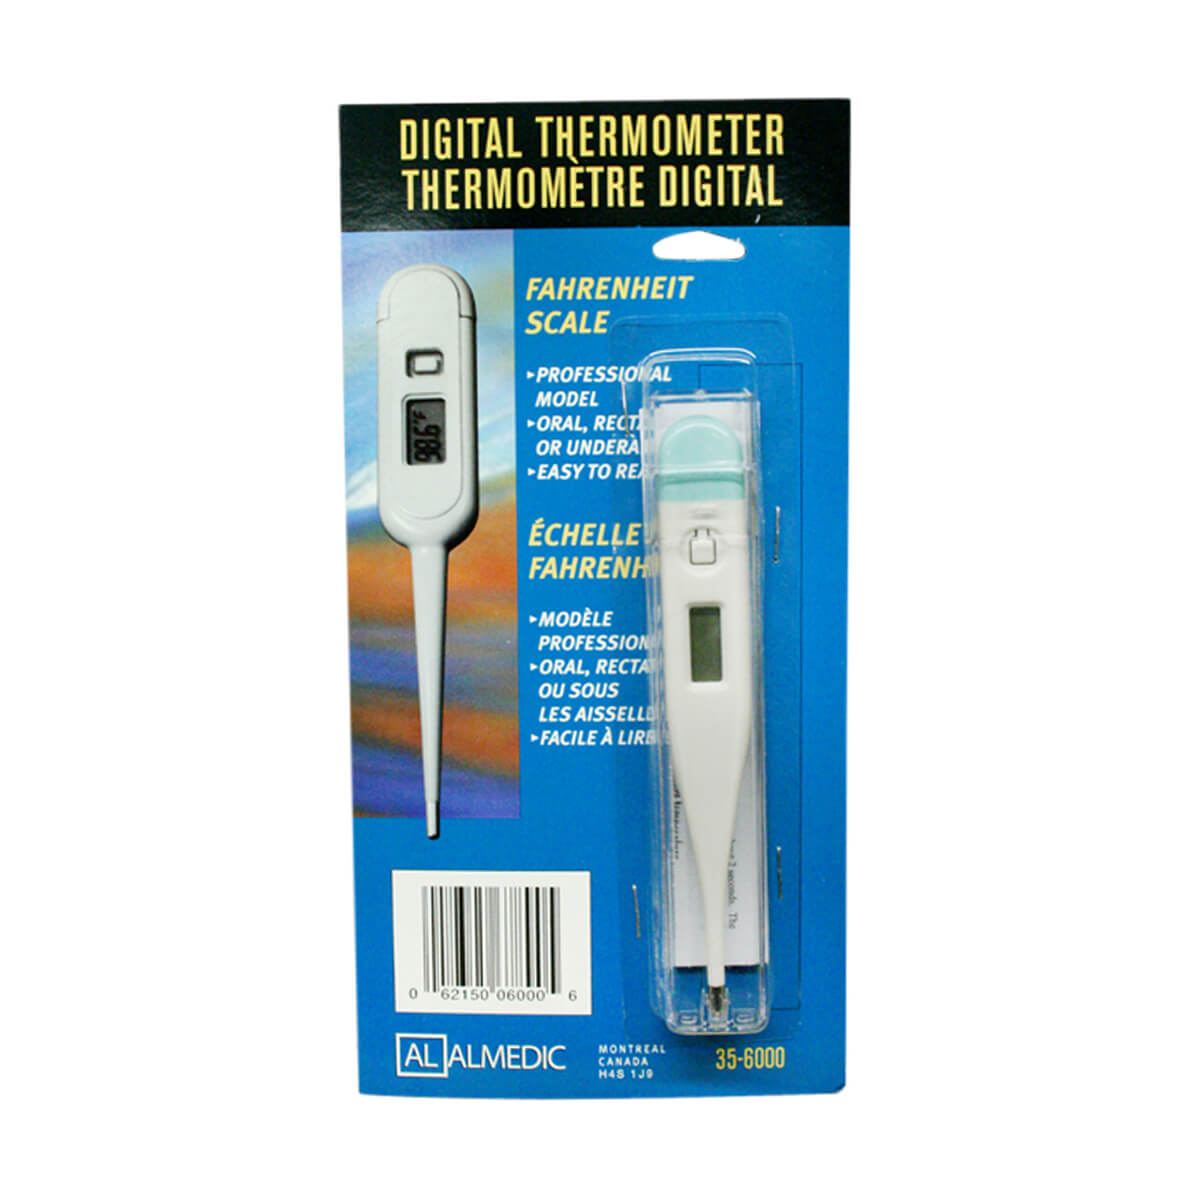 Digital Thermometer - Fahrenheit